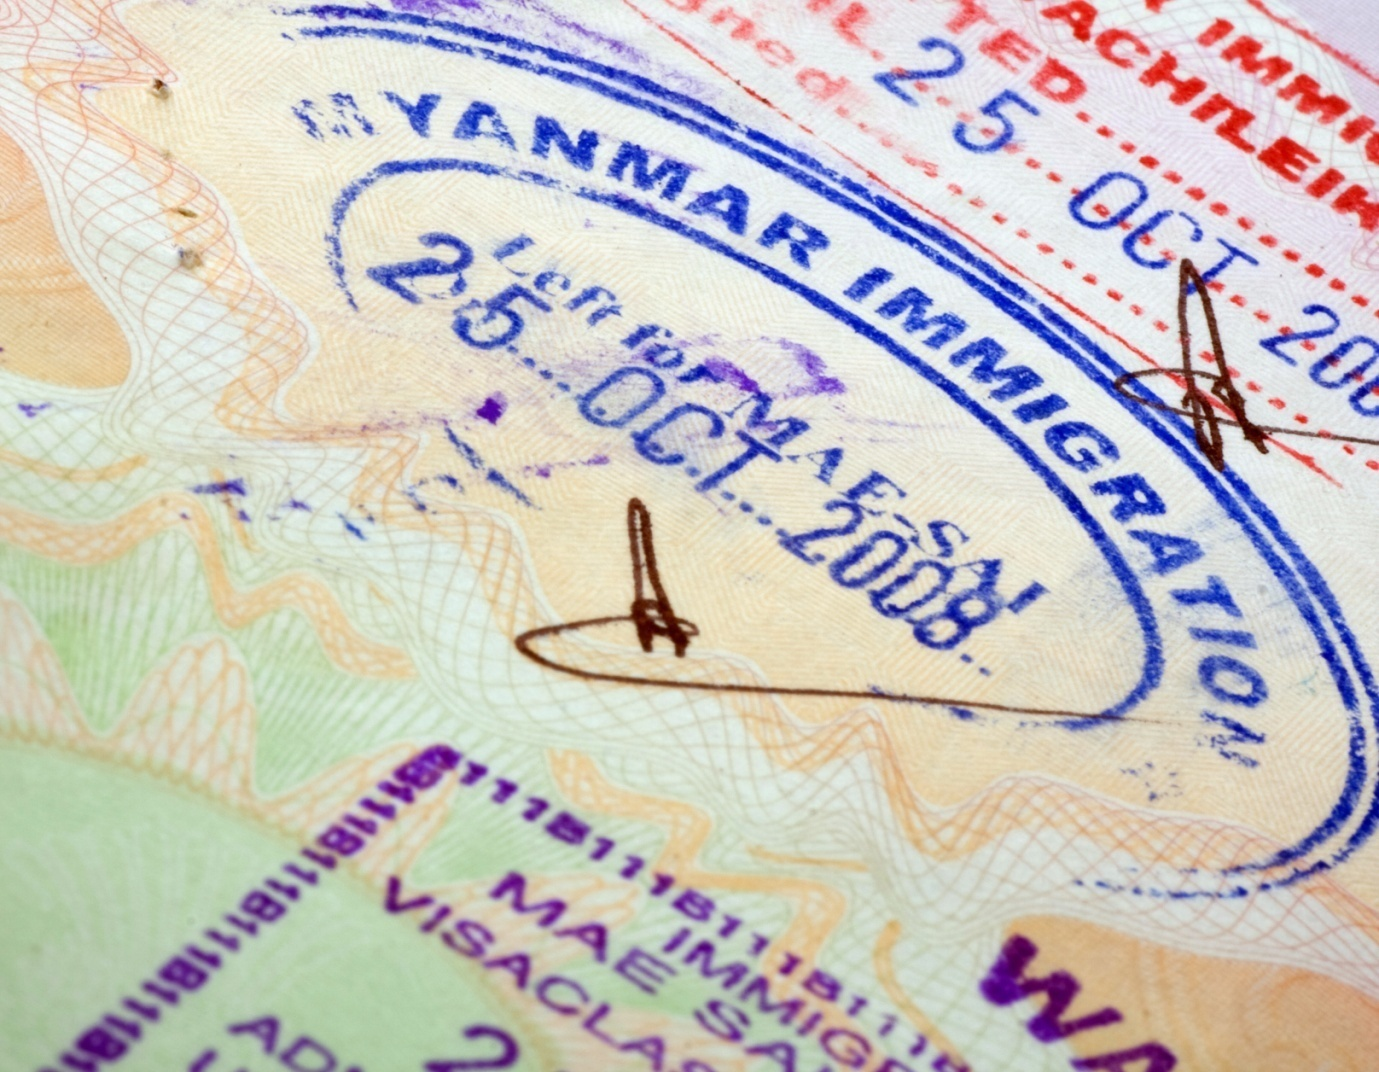 Myanmar Business Visa